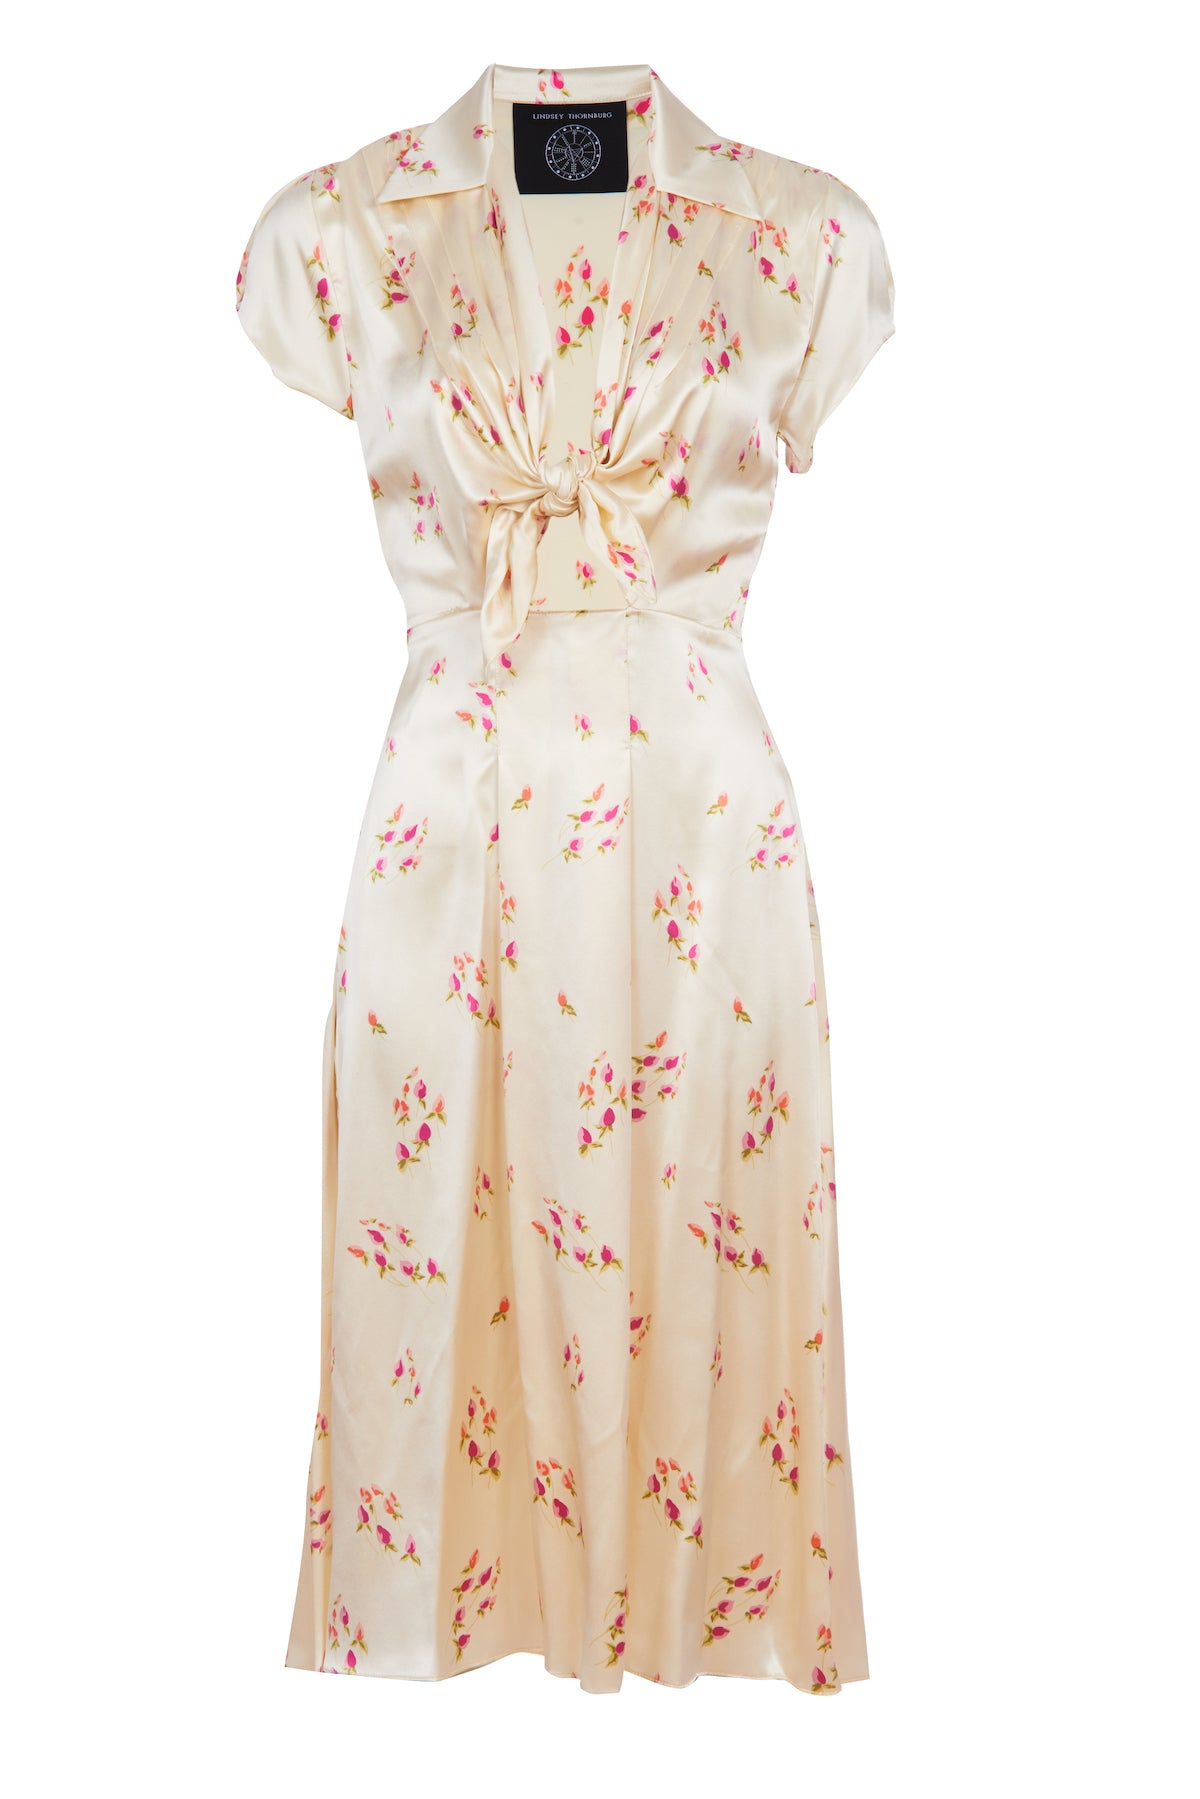 White Tea Rose Clark Dress